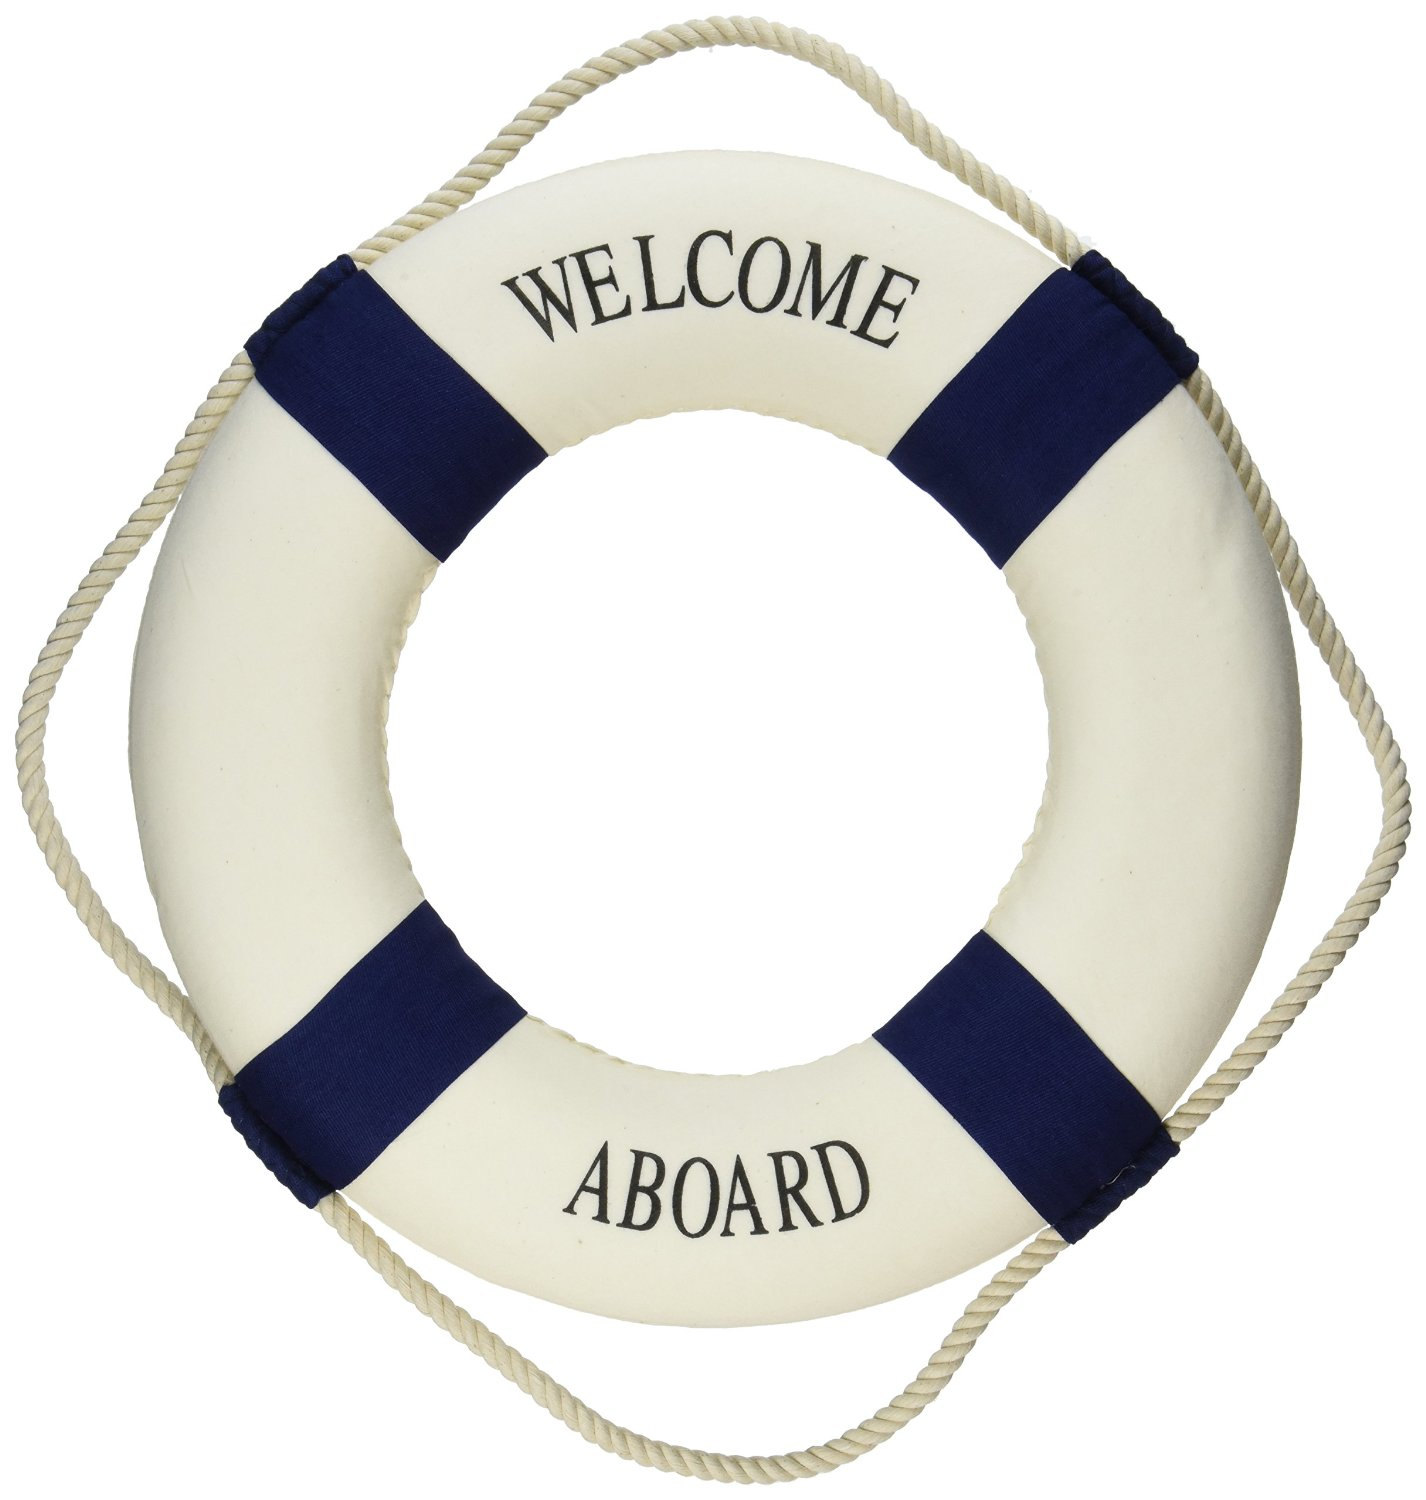 Nautical Life Ring Accent Decor Welcome Aboard Decoration